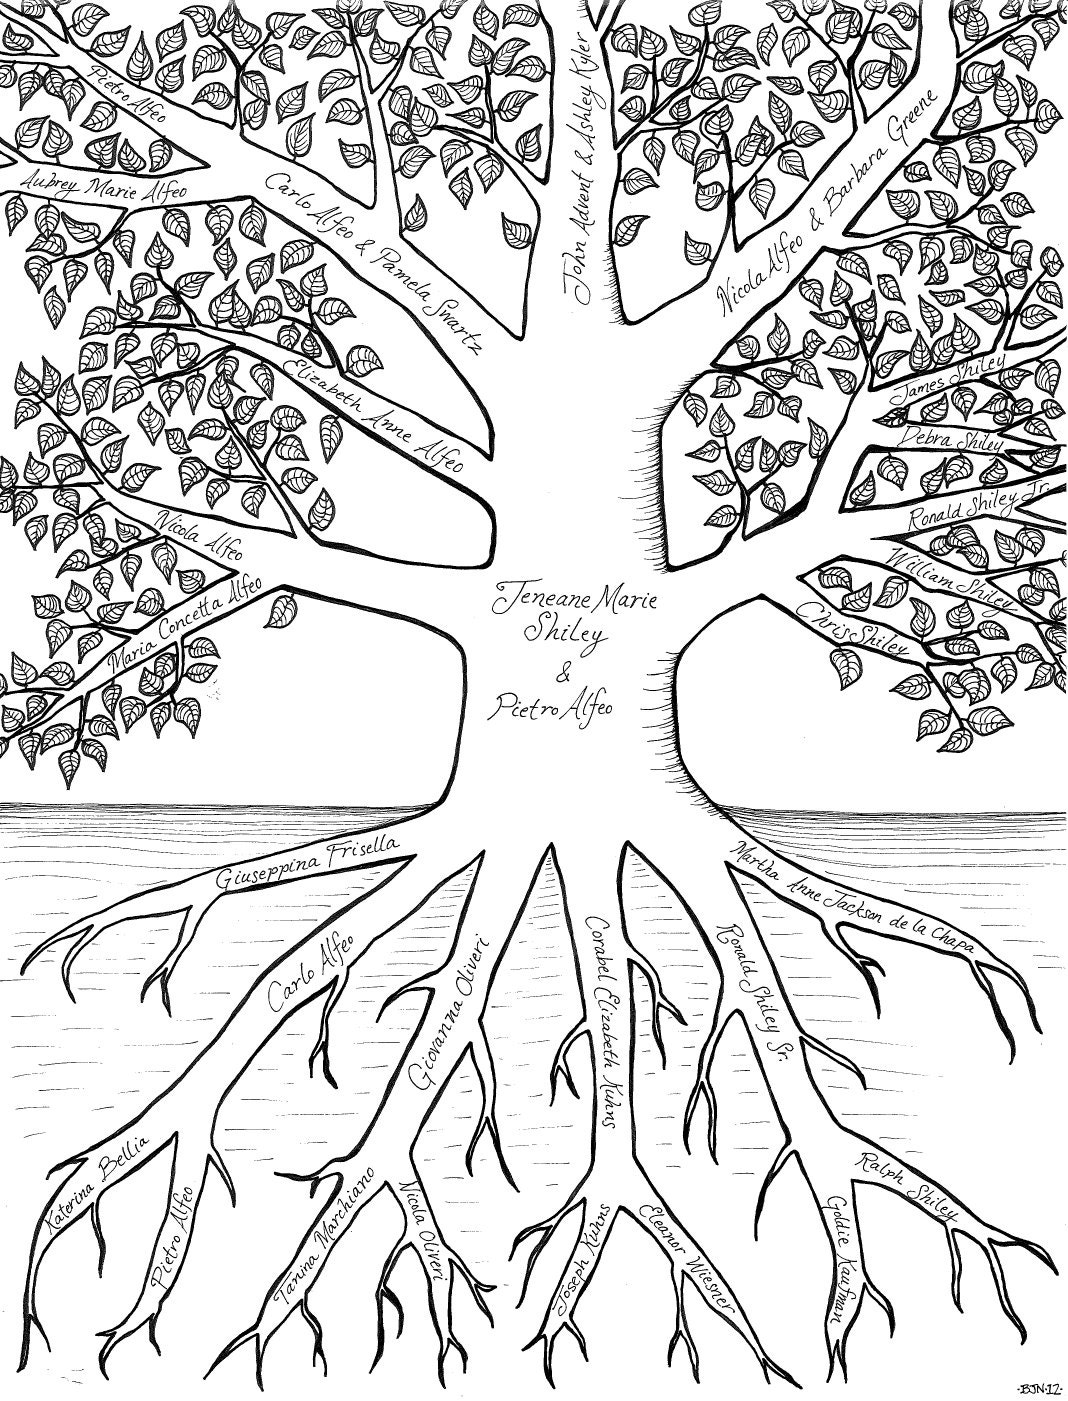 It's just a picture of Enterprising Drawings of a Family Tree